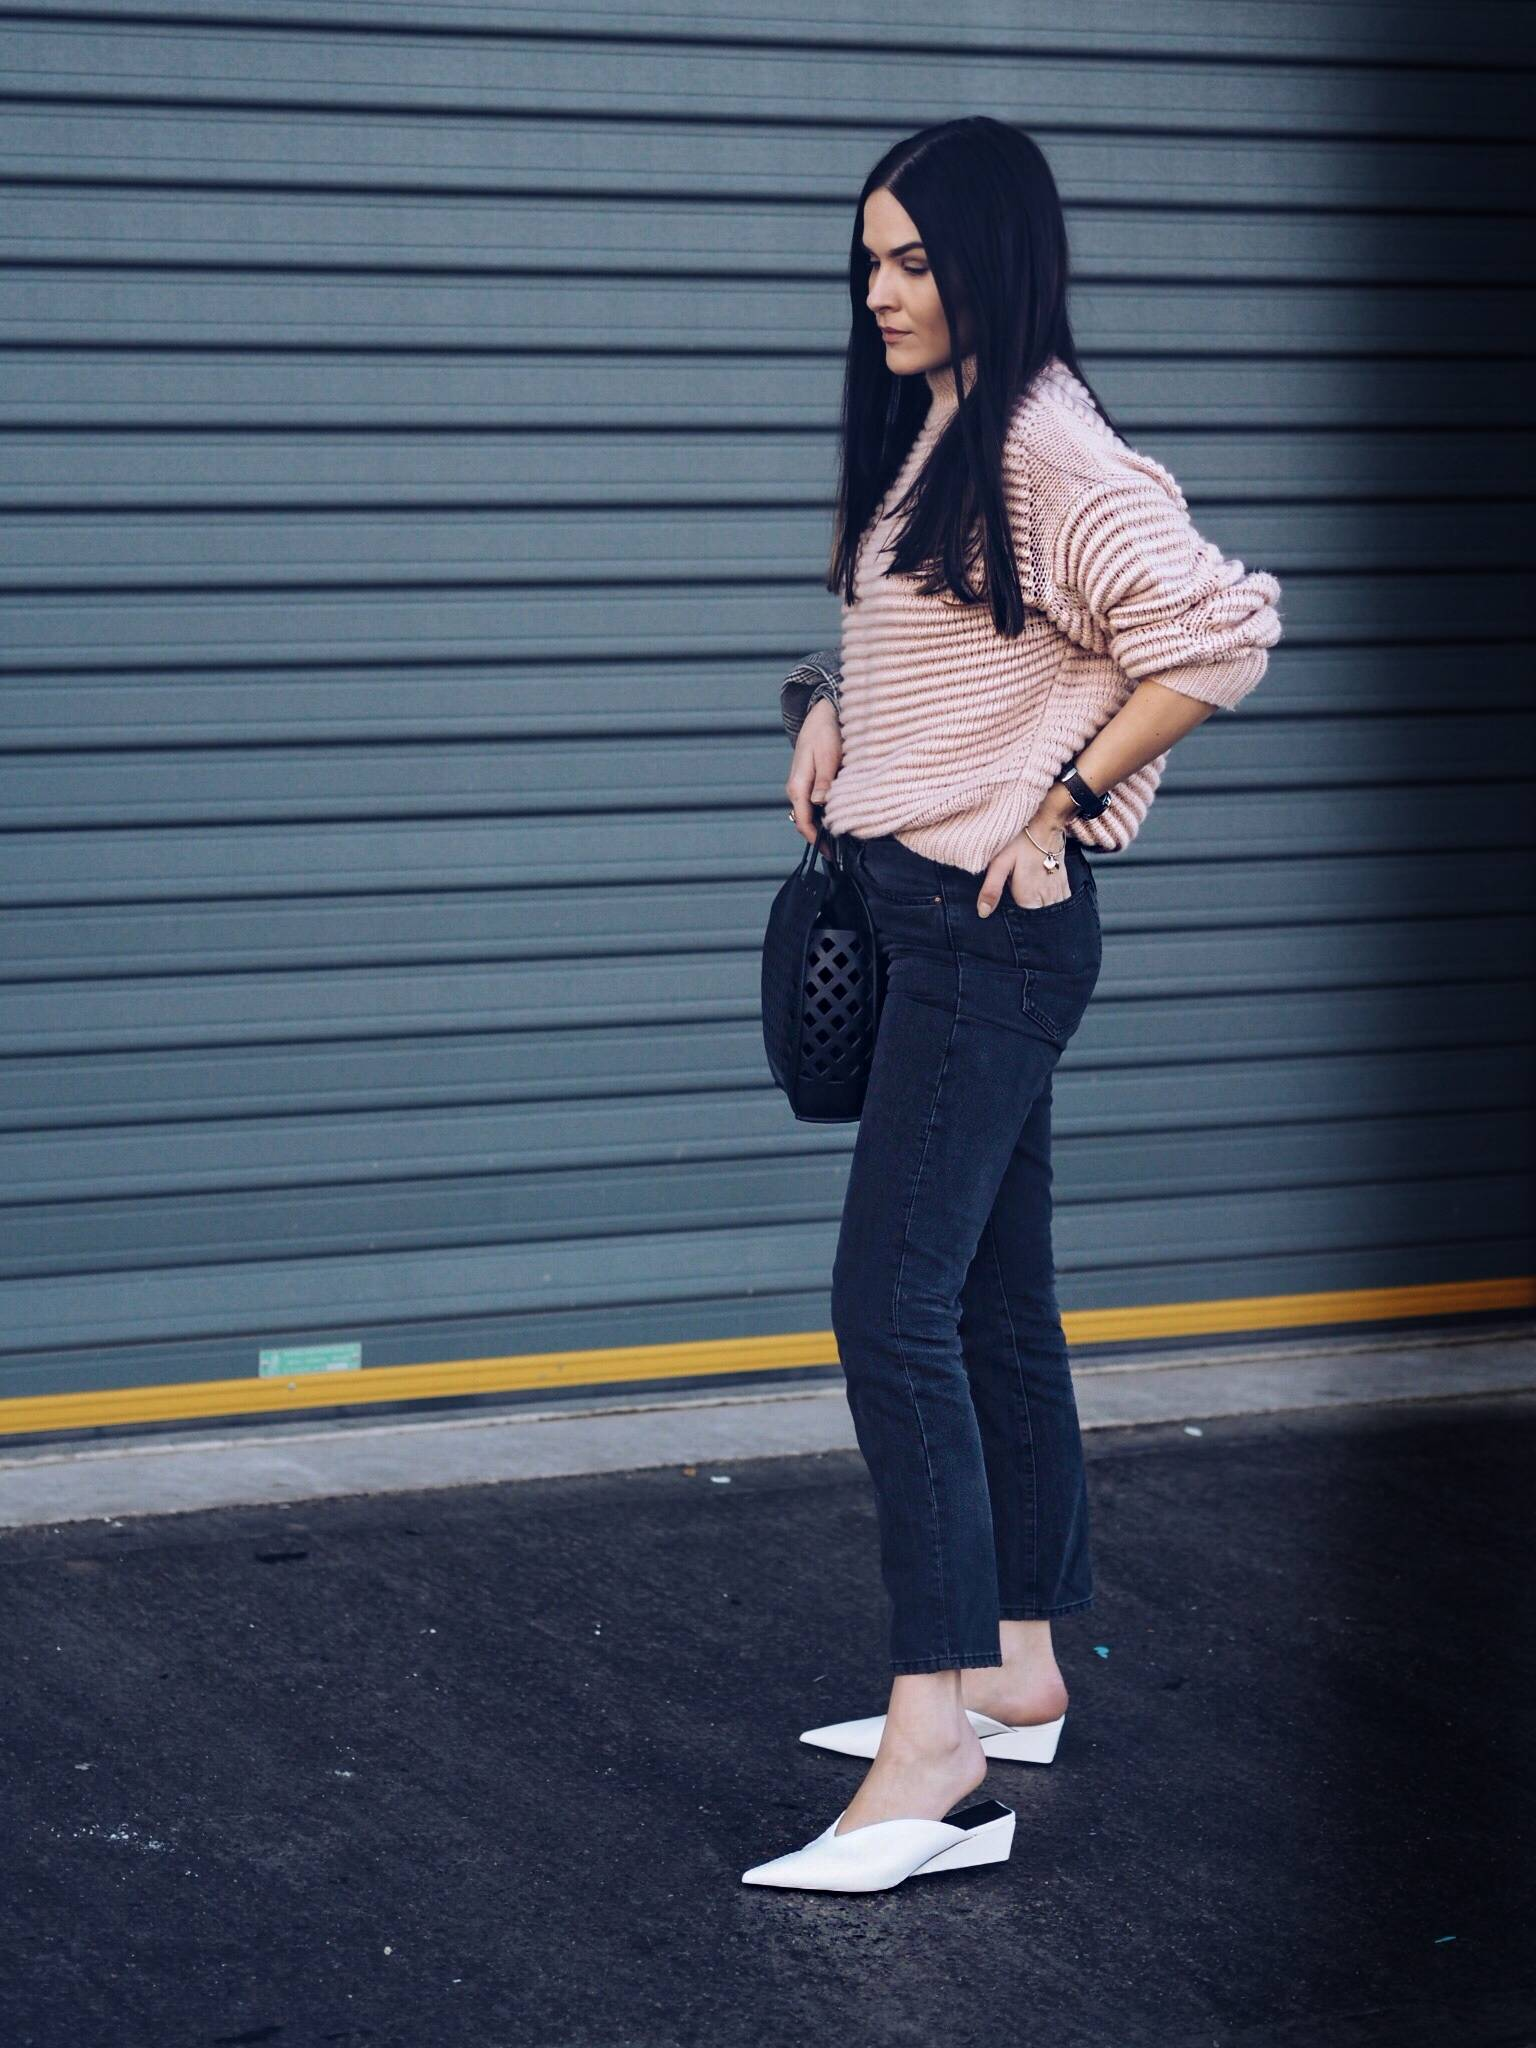 uk fashion blogger LAFOTKA wearing street style